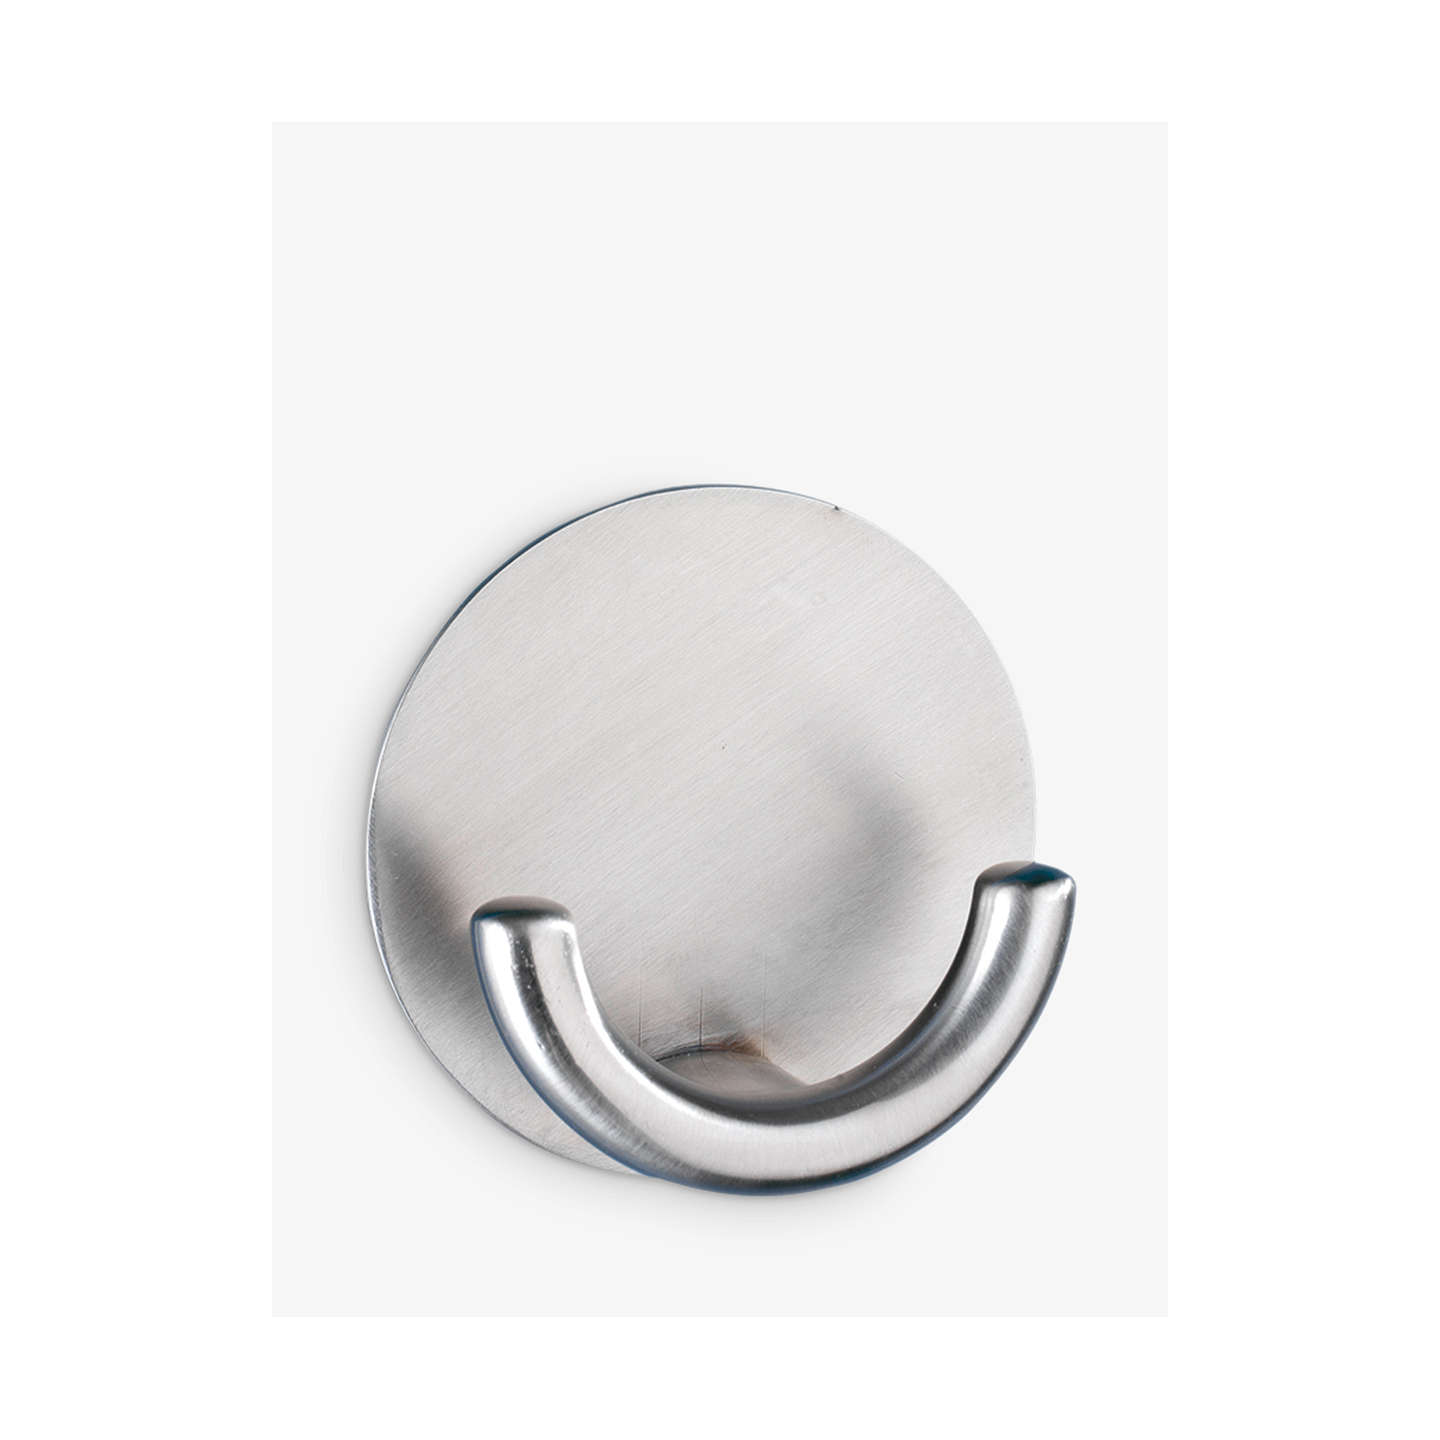 BuyWenko Rondo Stainless Steel Hook Online at johnlewis.com